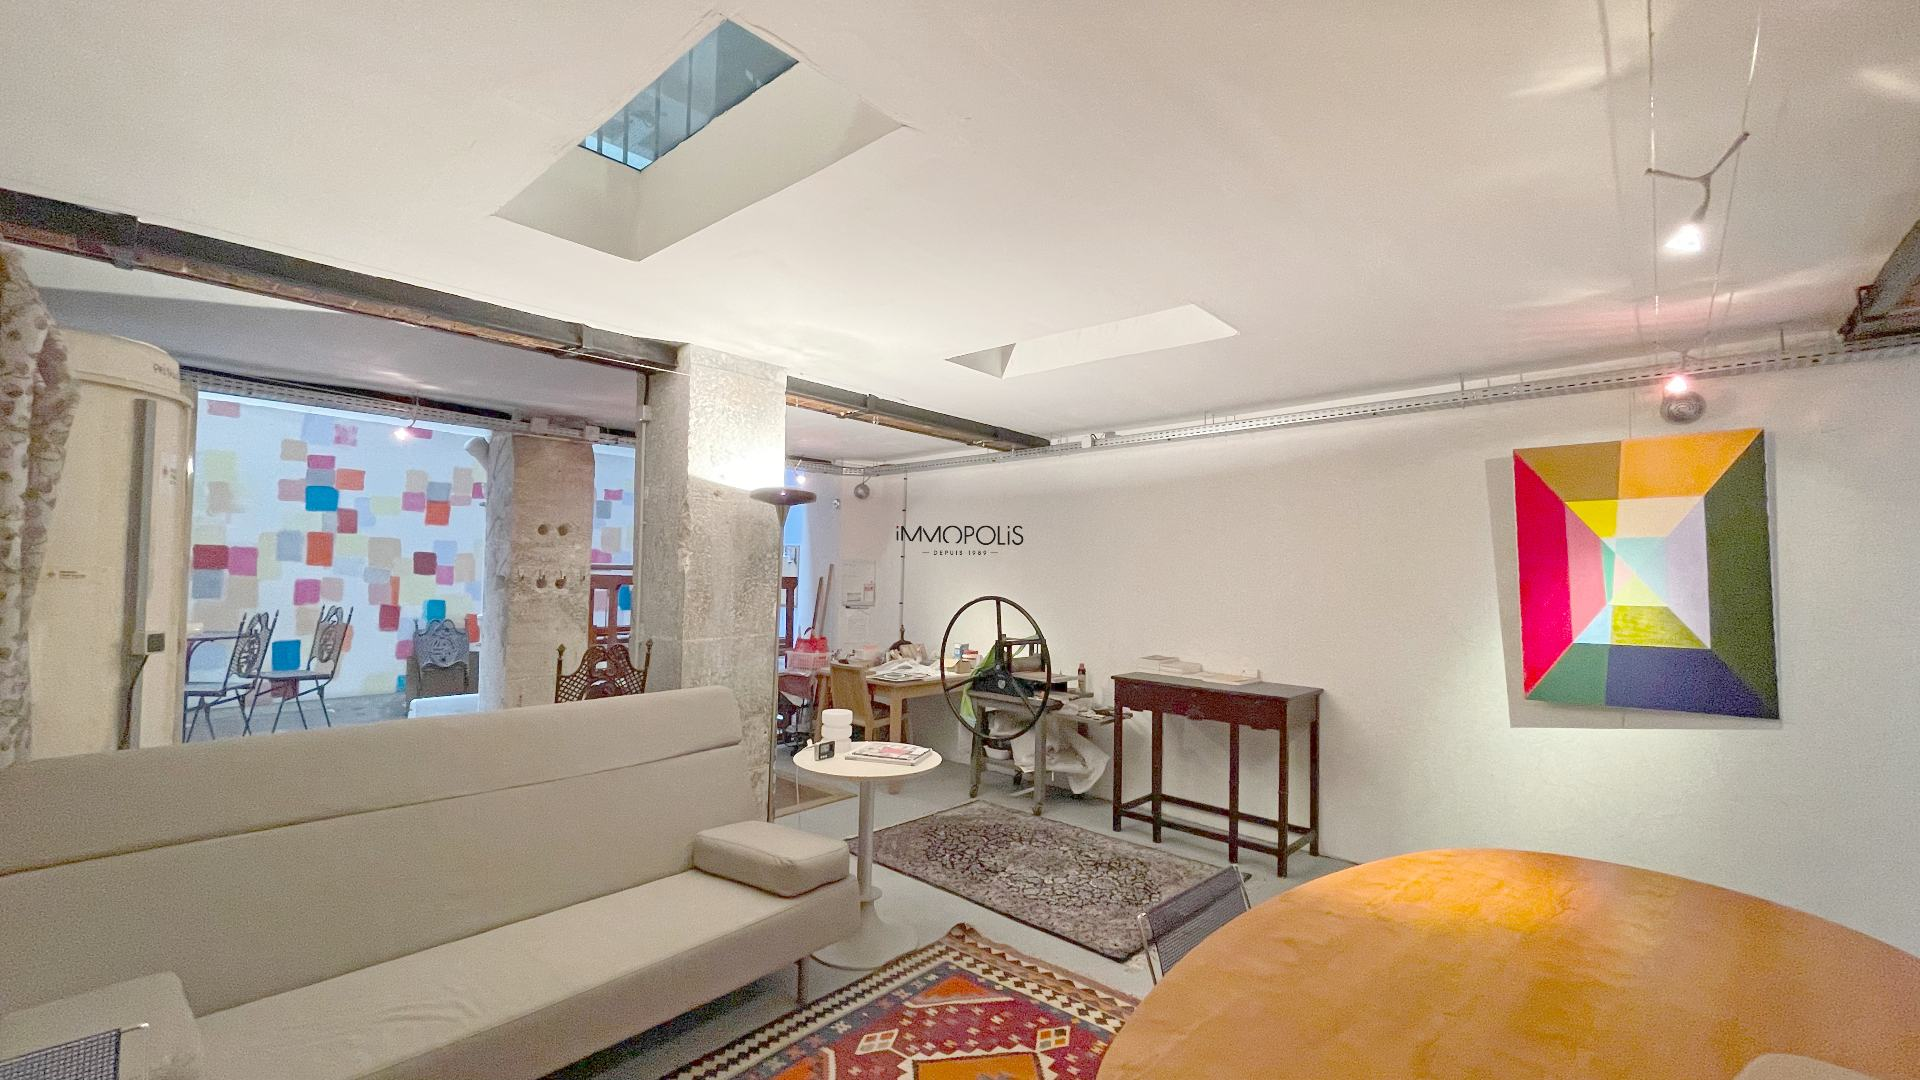 Loft / artist workshop totally atypical, in open-space on three levels with two glass windows overlooking quiet courtyard! 2